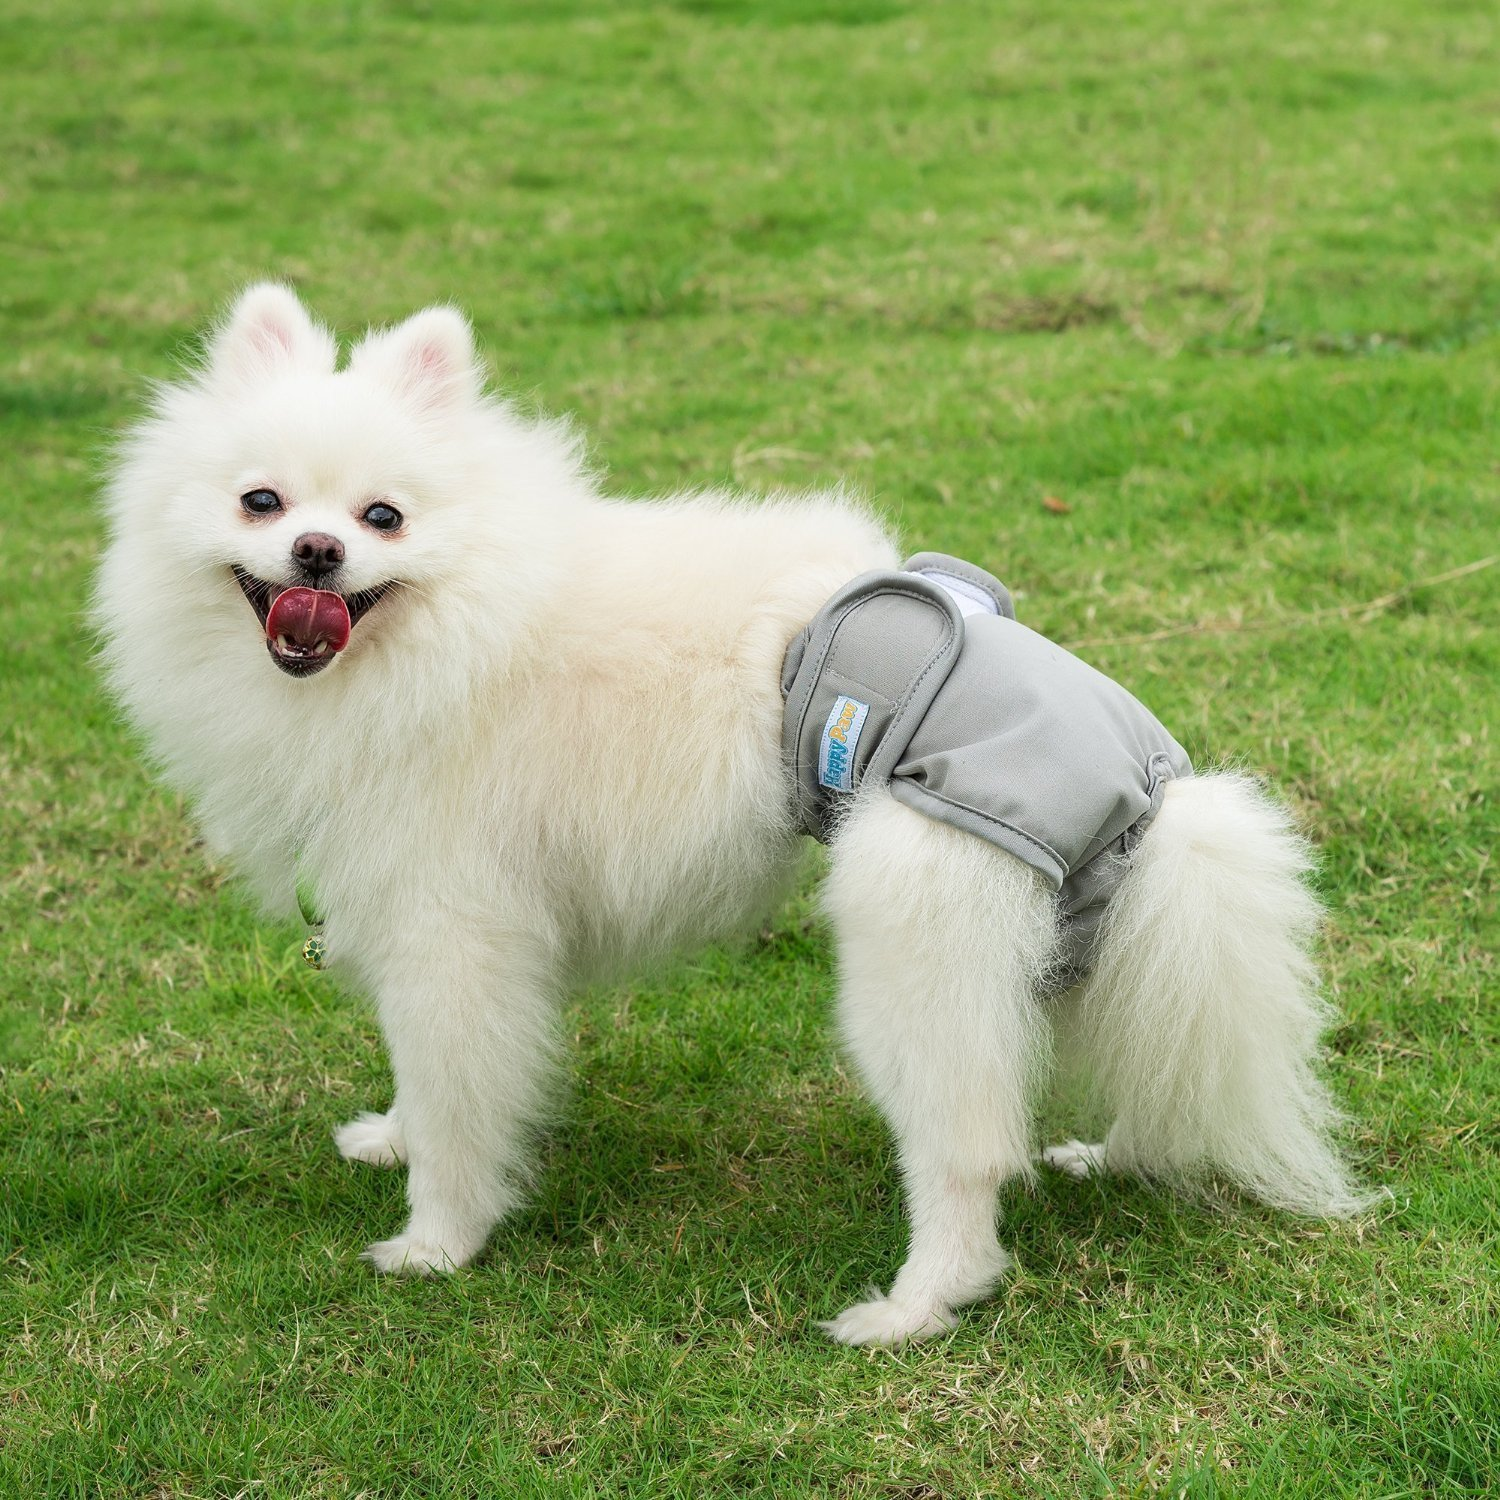 Reusable Washable Dog Diapers 3 Pack Durable Wraps Male and Female Dogs Premium